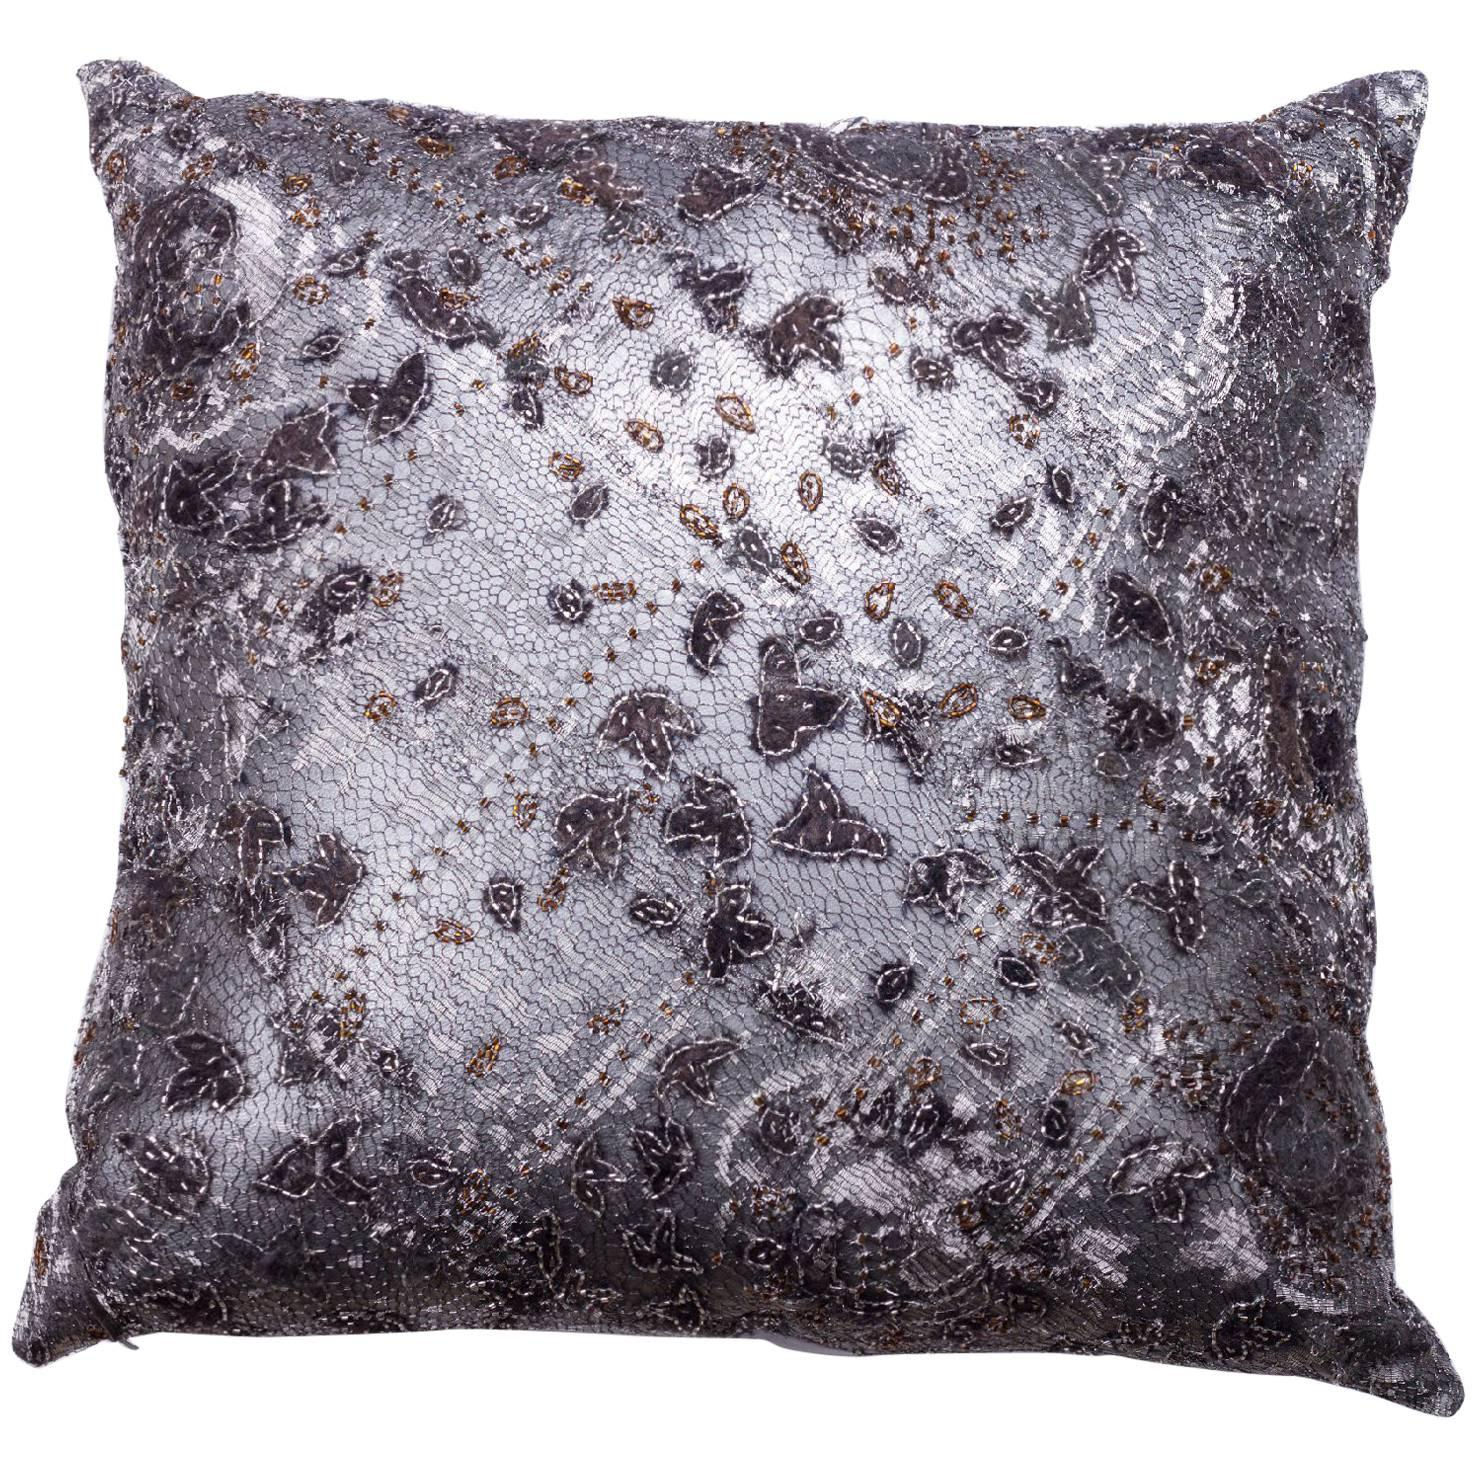 Couture Lace and Leather Pillow